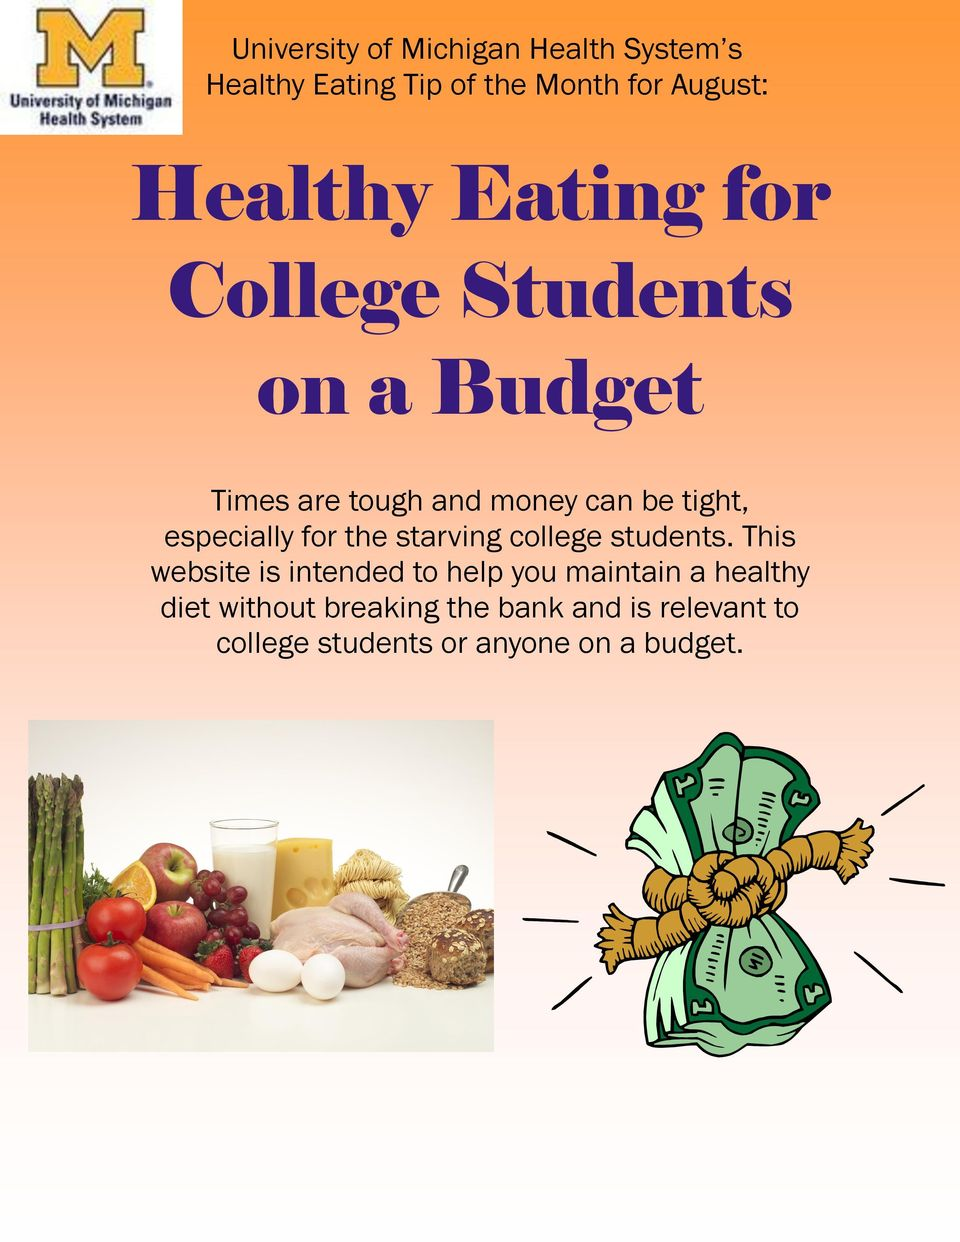 for the starving college students.